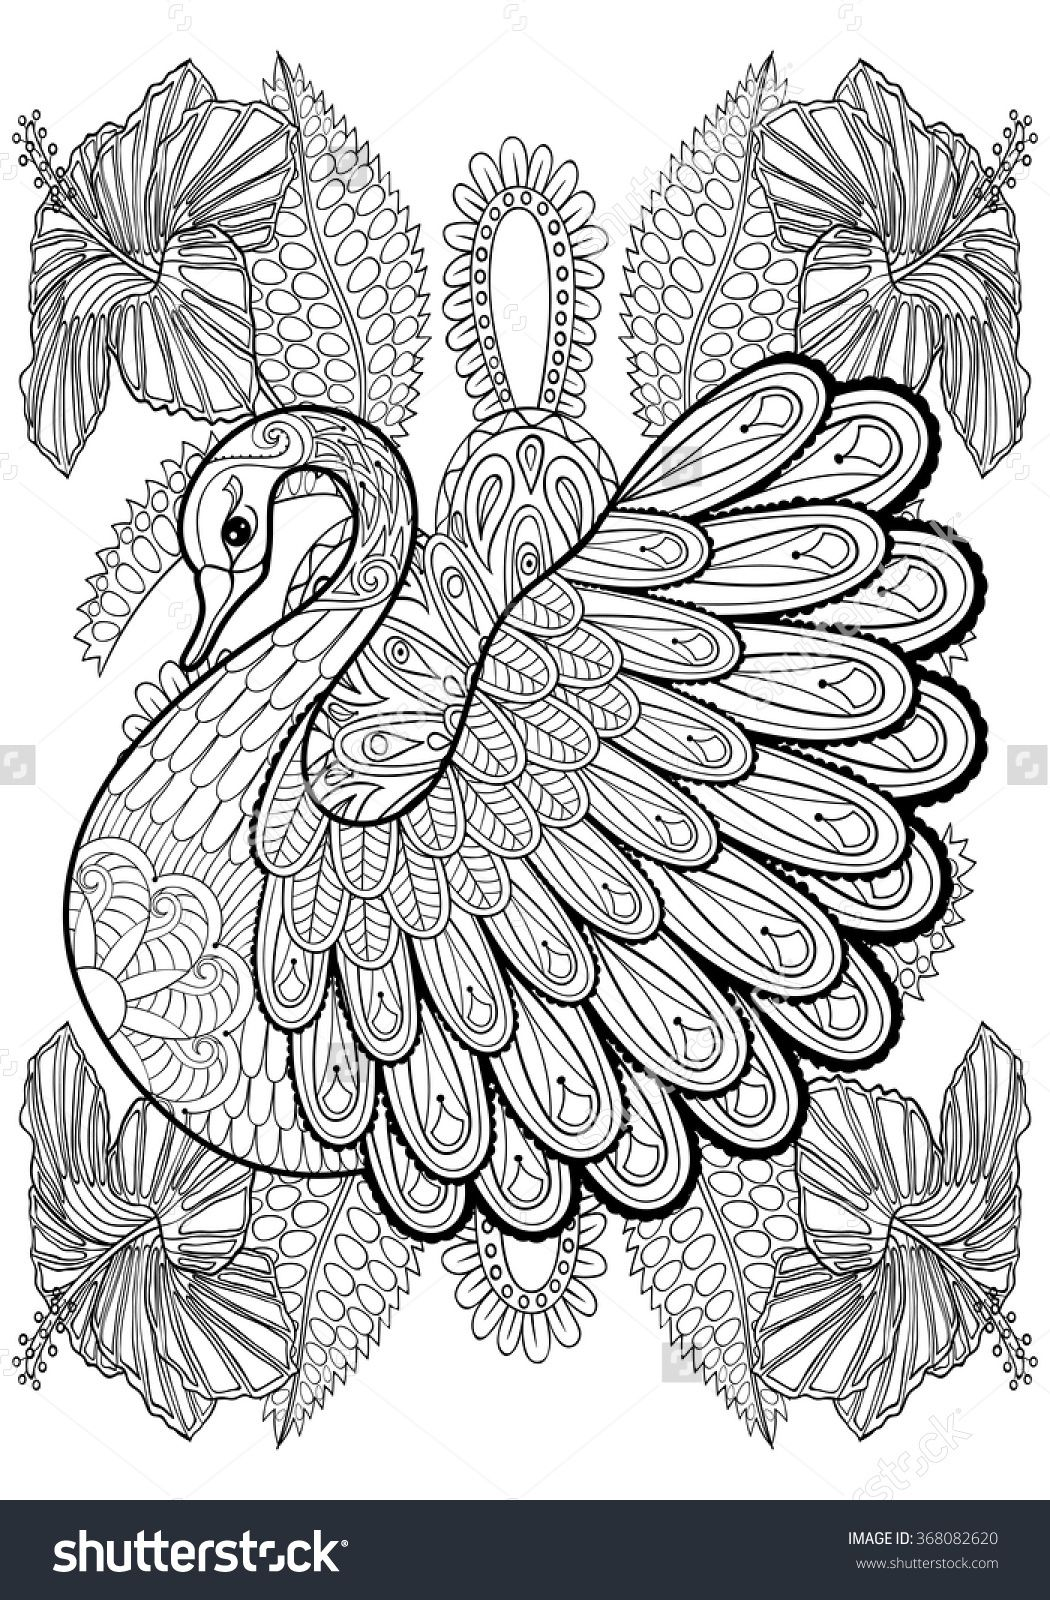 Coloring Pages For Adults Flowers Google Search Design